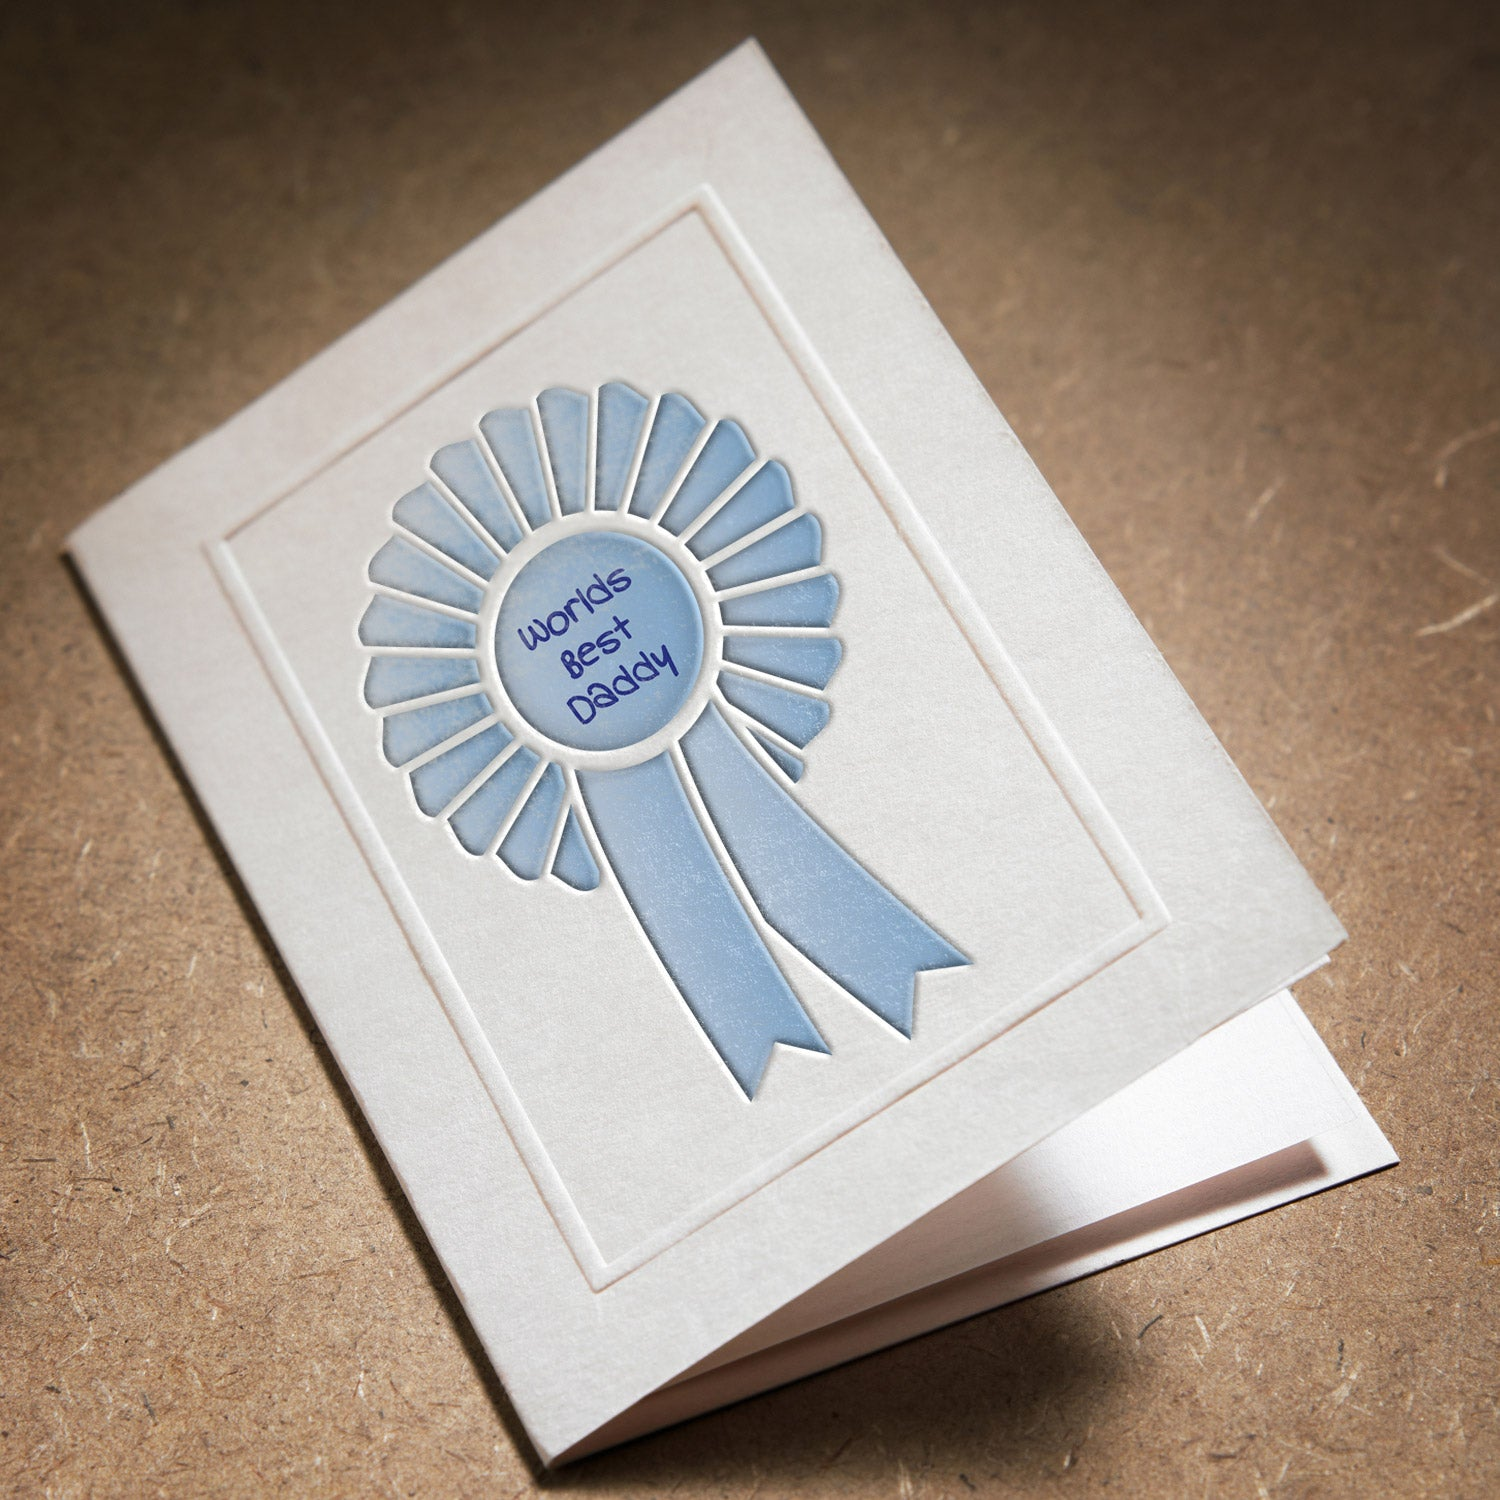 CraftStar Rosette Stencil on card